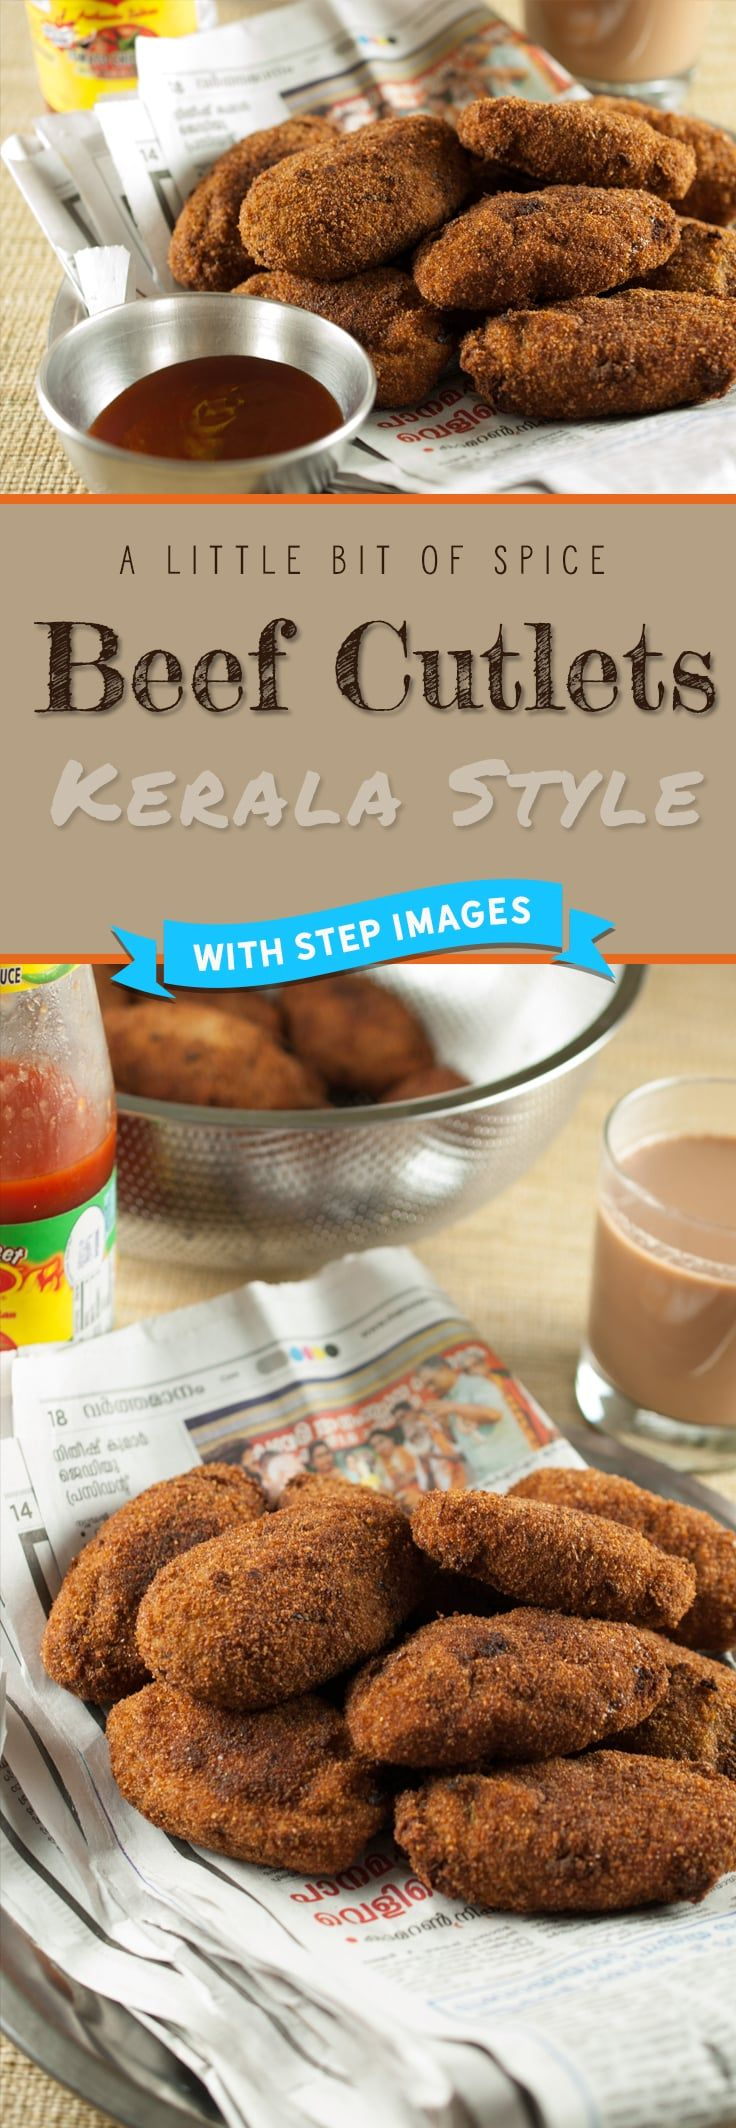 Beef cooked with spices, dipped in an egg mix and then in breadcrumbs and fried. An appetizer which is never missed out at parties especially in a Kerala Christian home. #beef #beefcutlet #cutlet #croquette